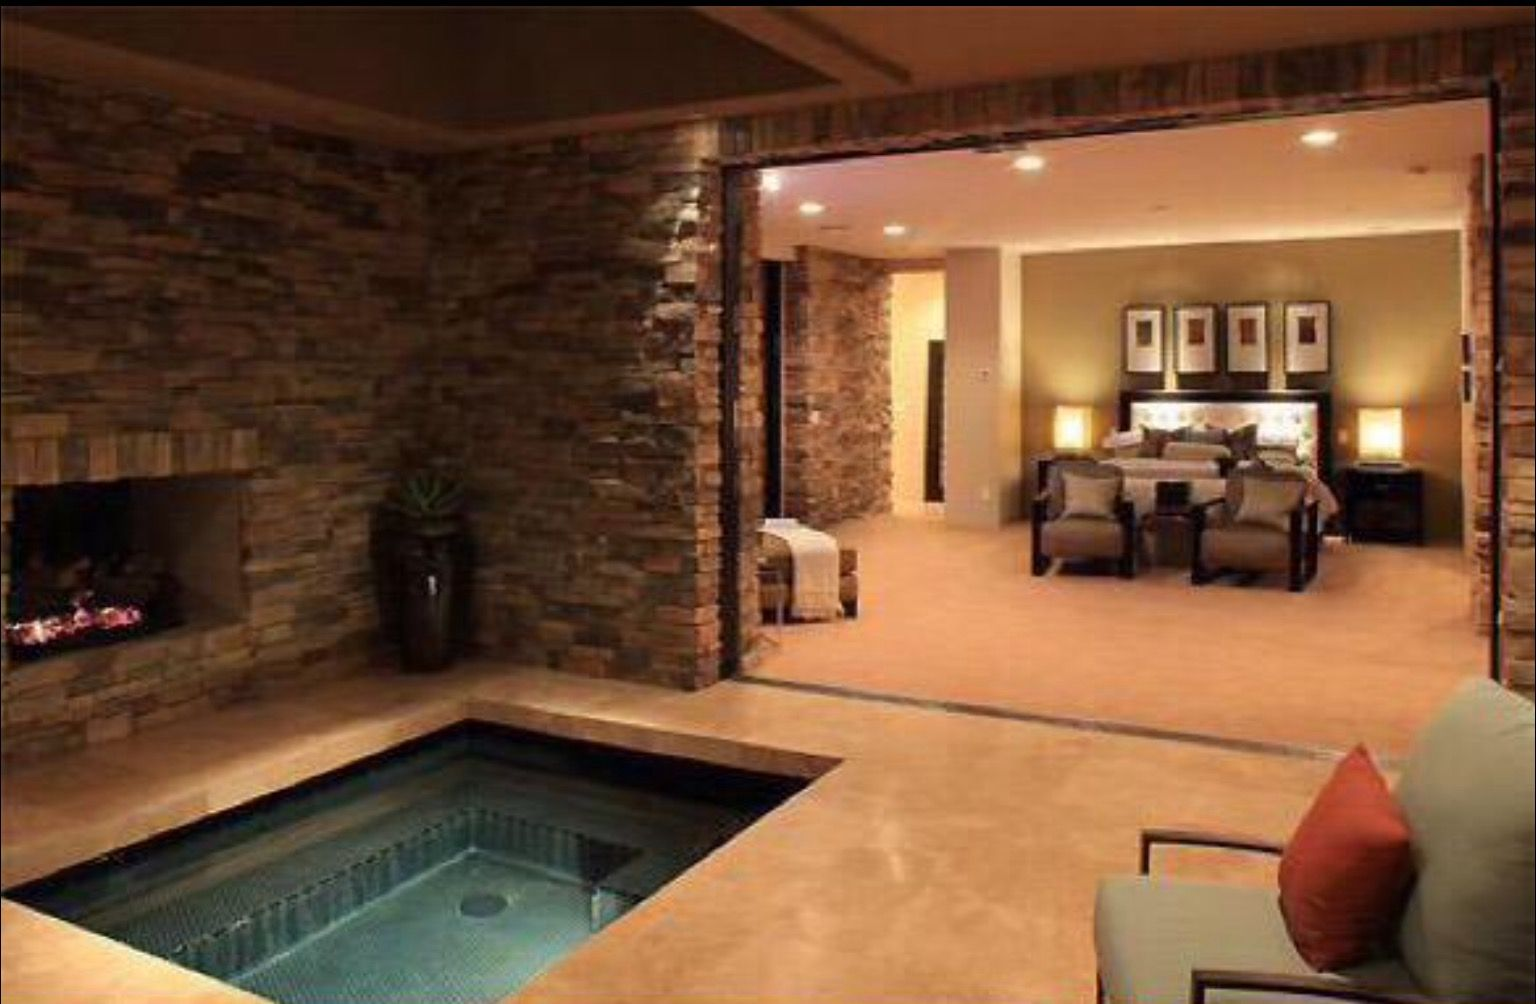 Master Bedroom With Hot Tub And Fireplace Indoor Jacuzzi Luxury Bedroom Master Indoor Hot Tub